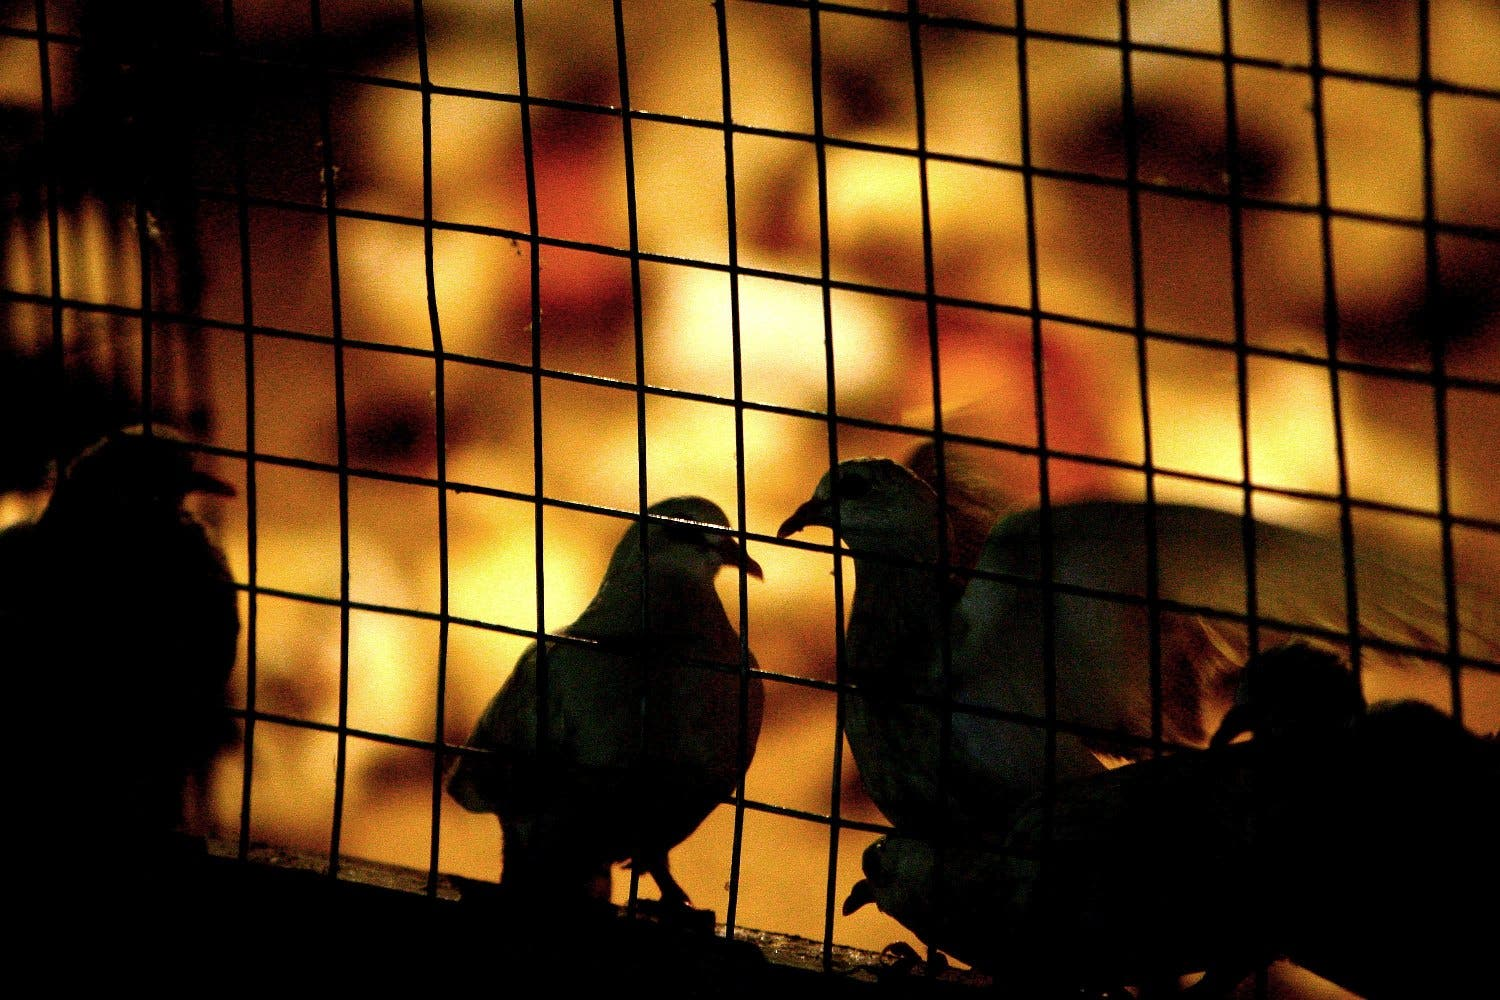 An Emirate policeman, whose wife allegedly caught him having sex with his Indonesian housemaid in a pigeon cage, has  denied all charges levelled against him. More recently the Uzbek wife witness has since been cagey about her initial report,  denying her witness charges.